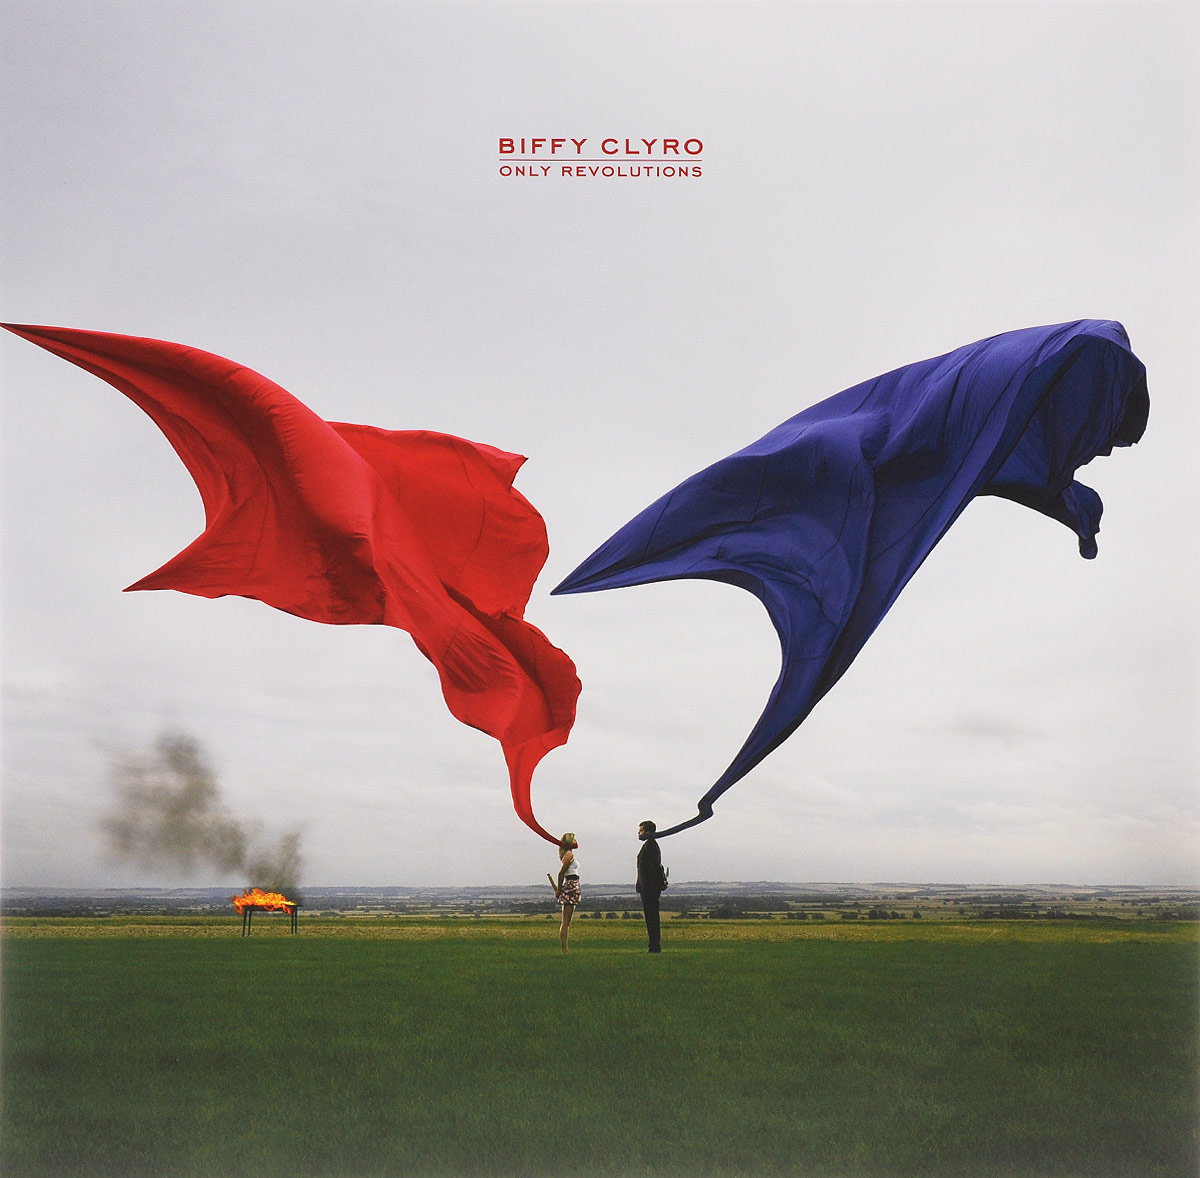 Zakazat.ru Biffy Clyro. Only Revolutions (LP)